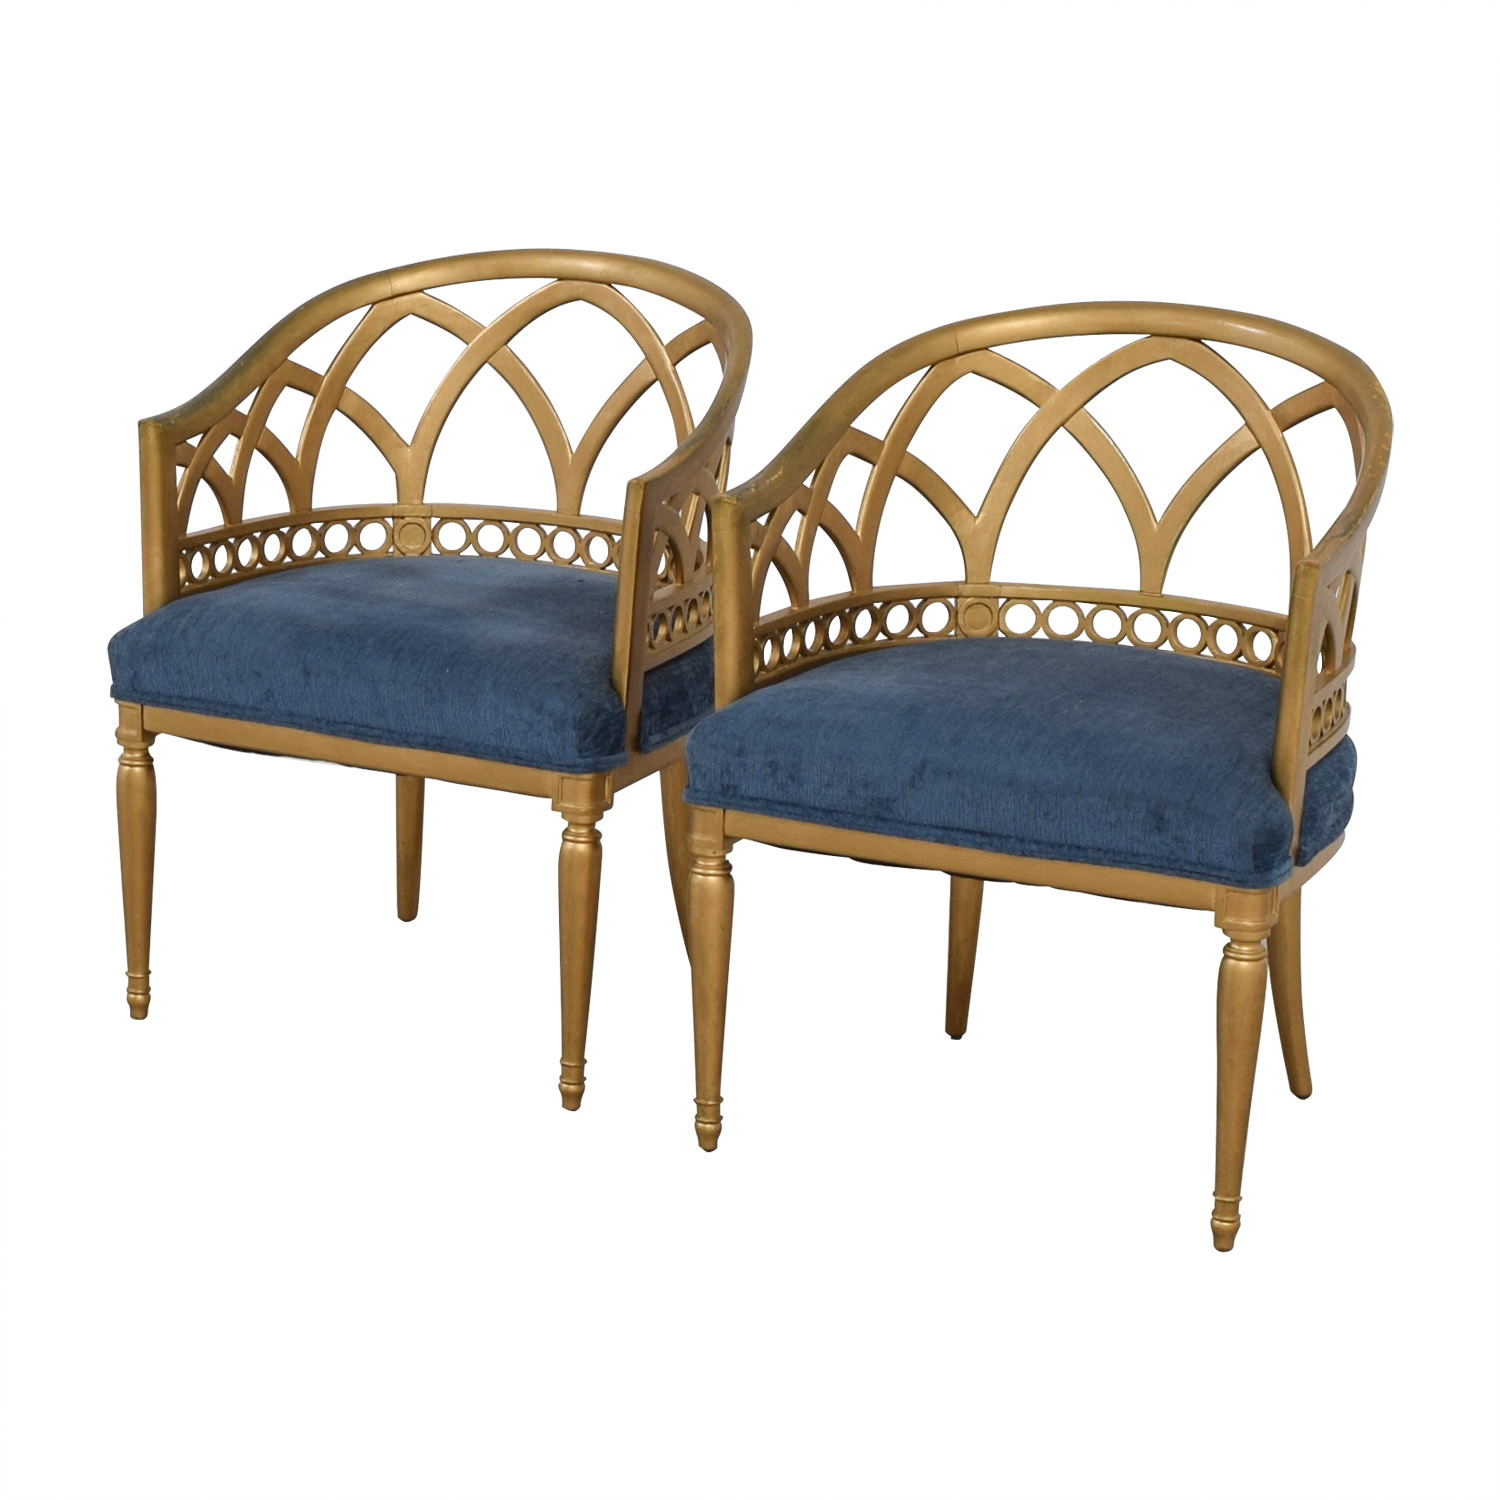 Regency Blue and Gold Accent Chairs